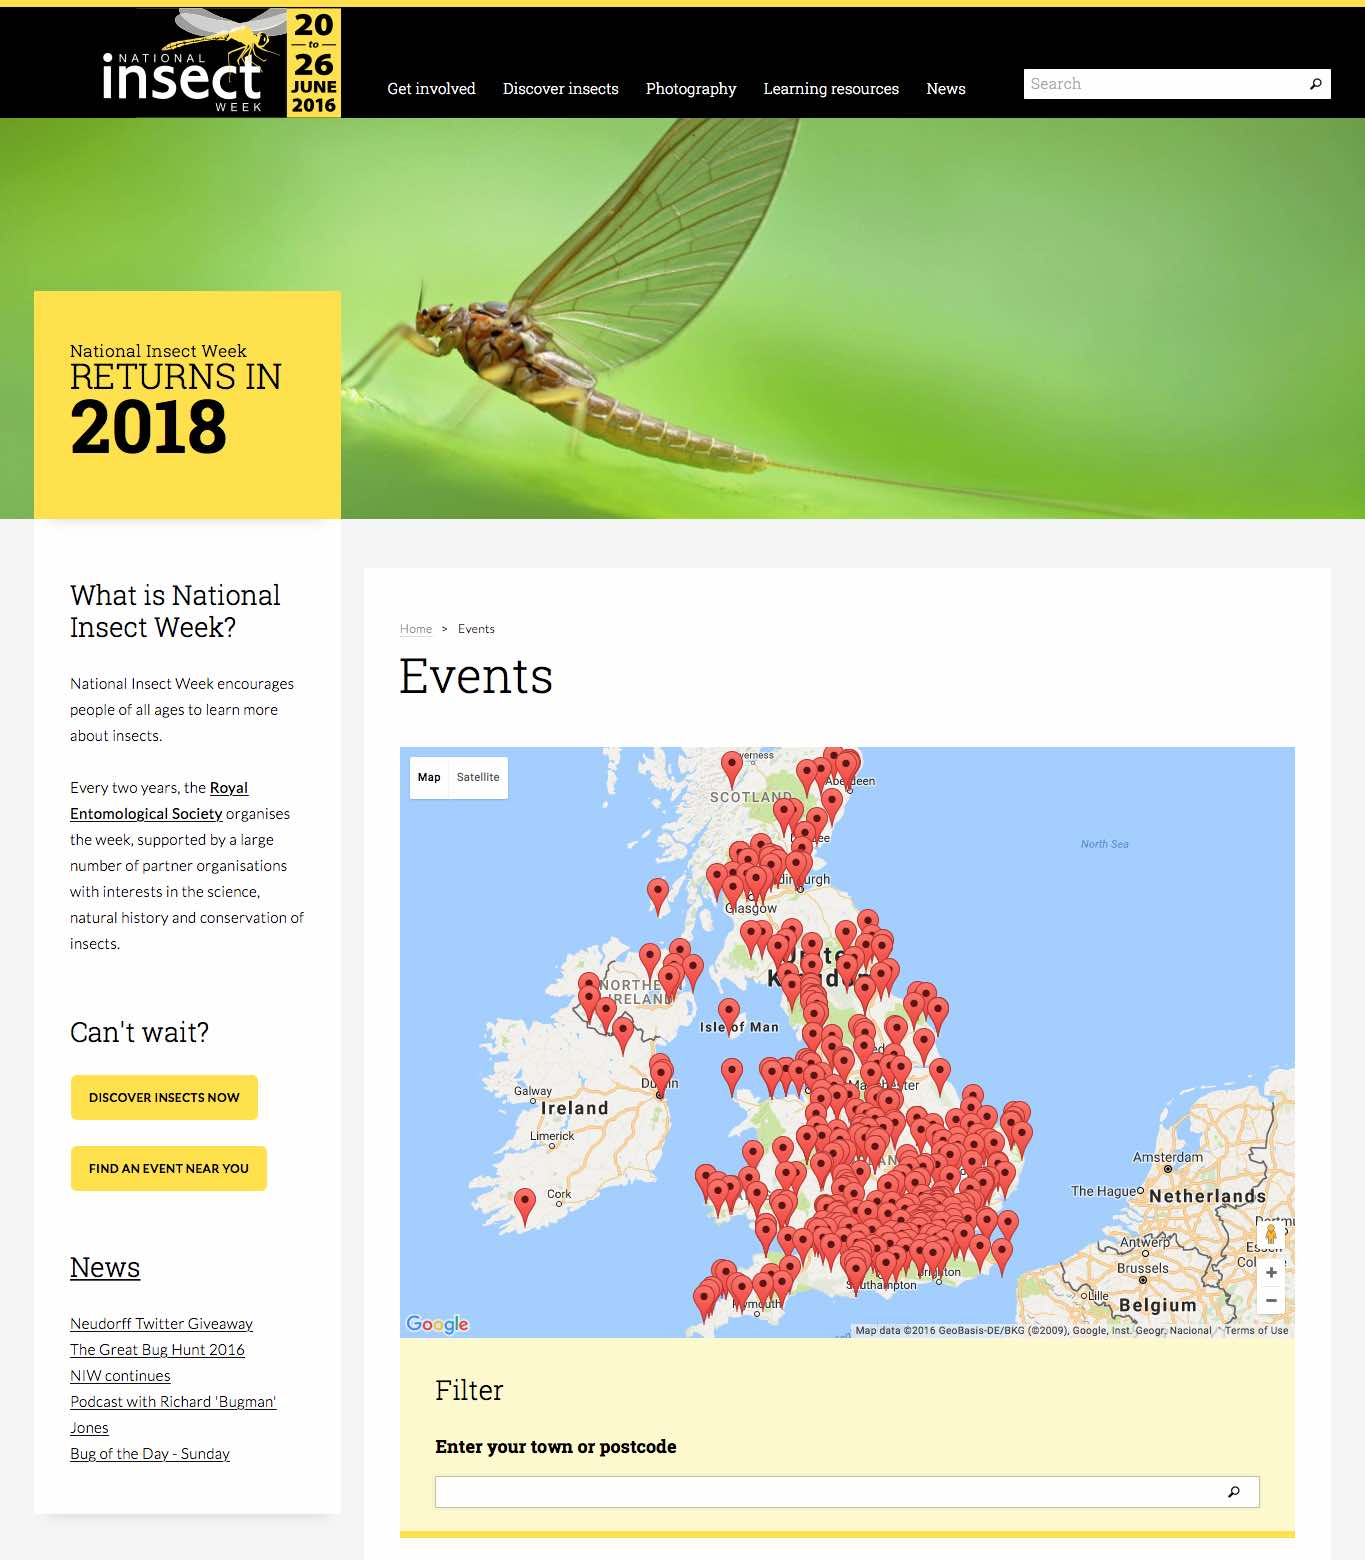 National Insect Week events map